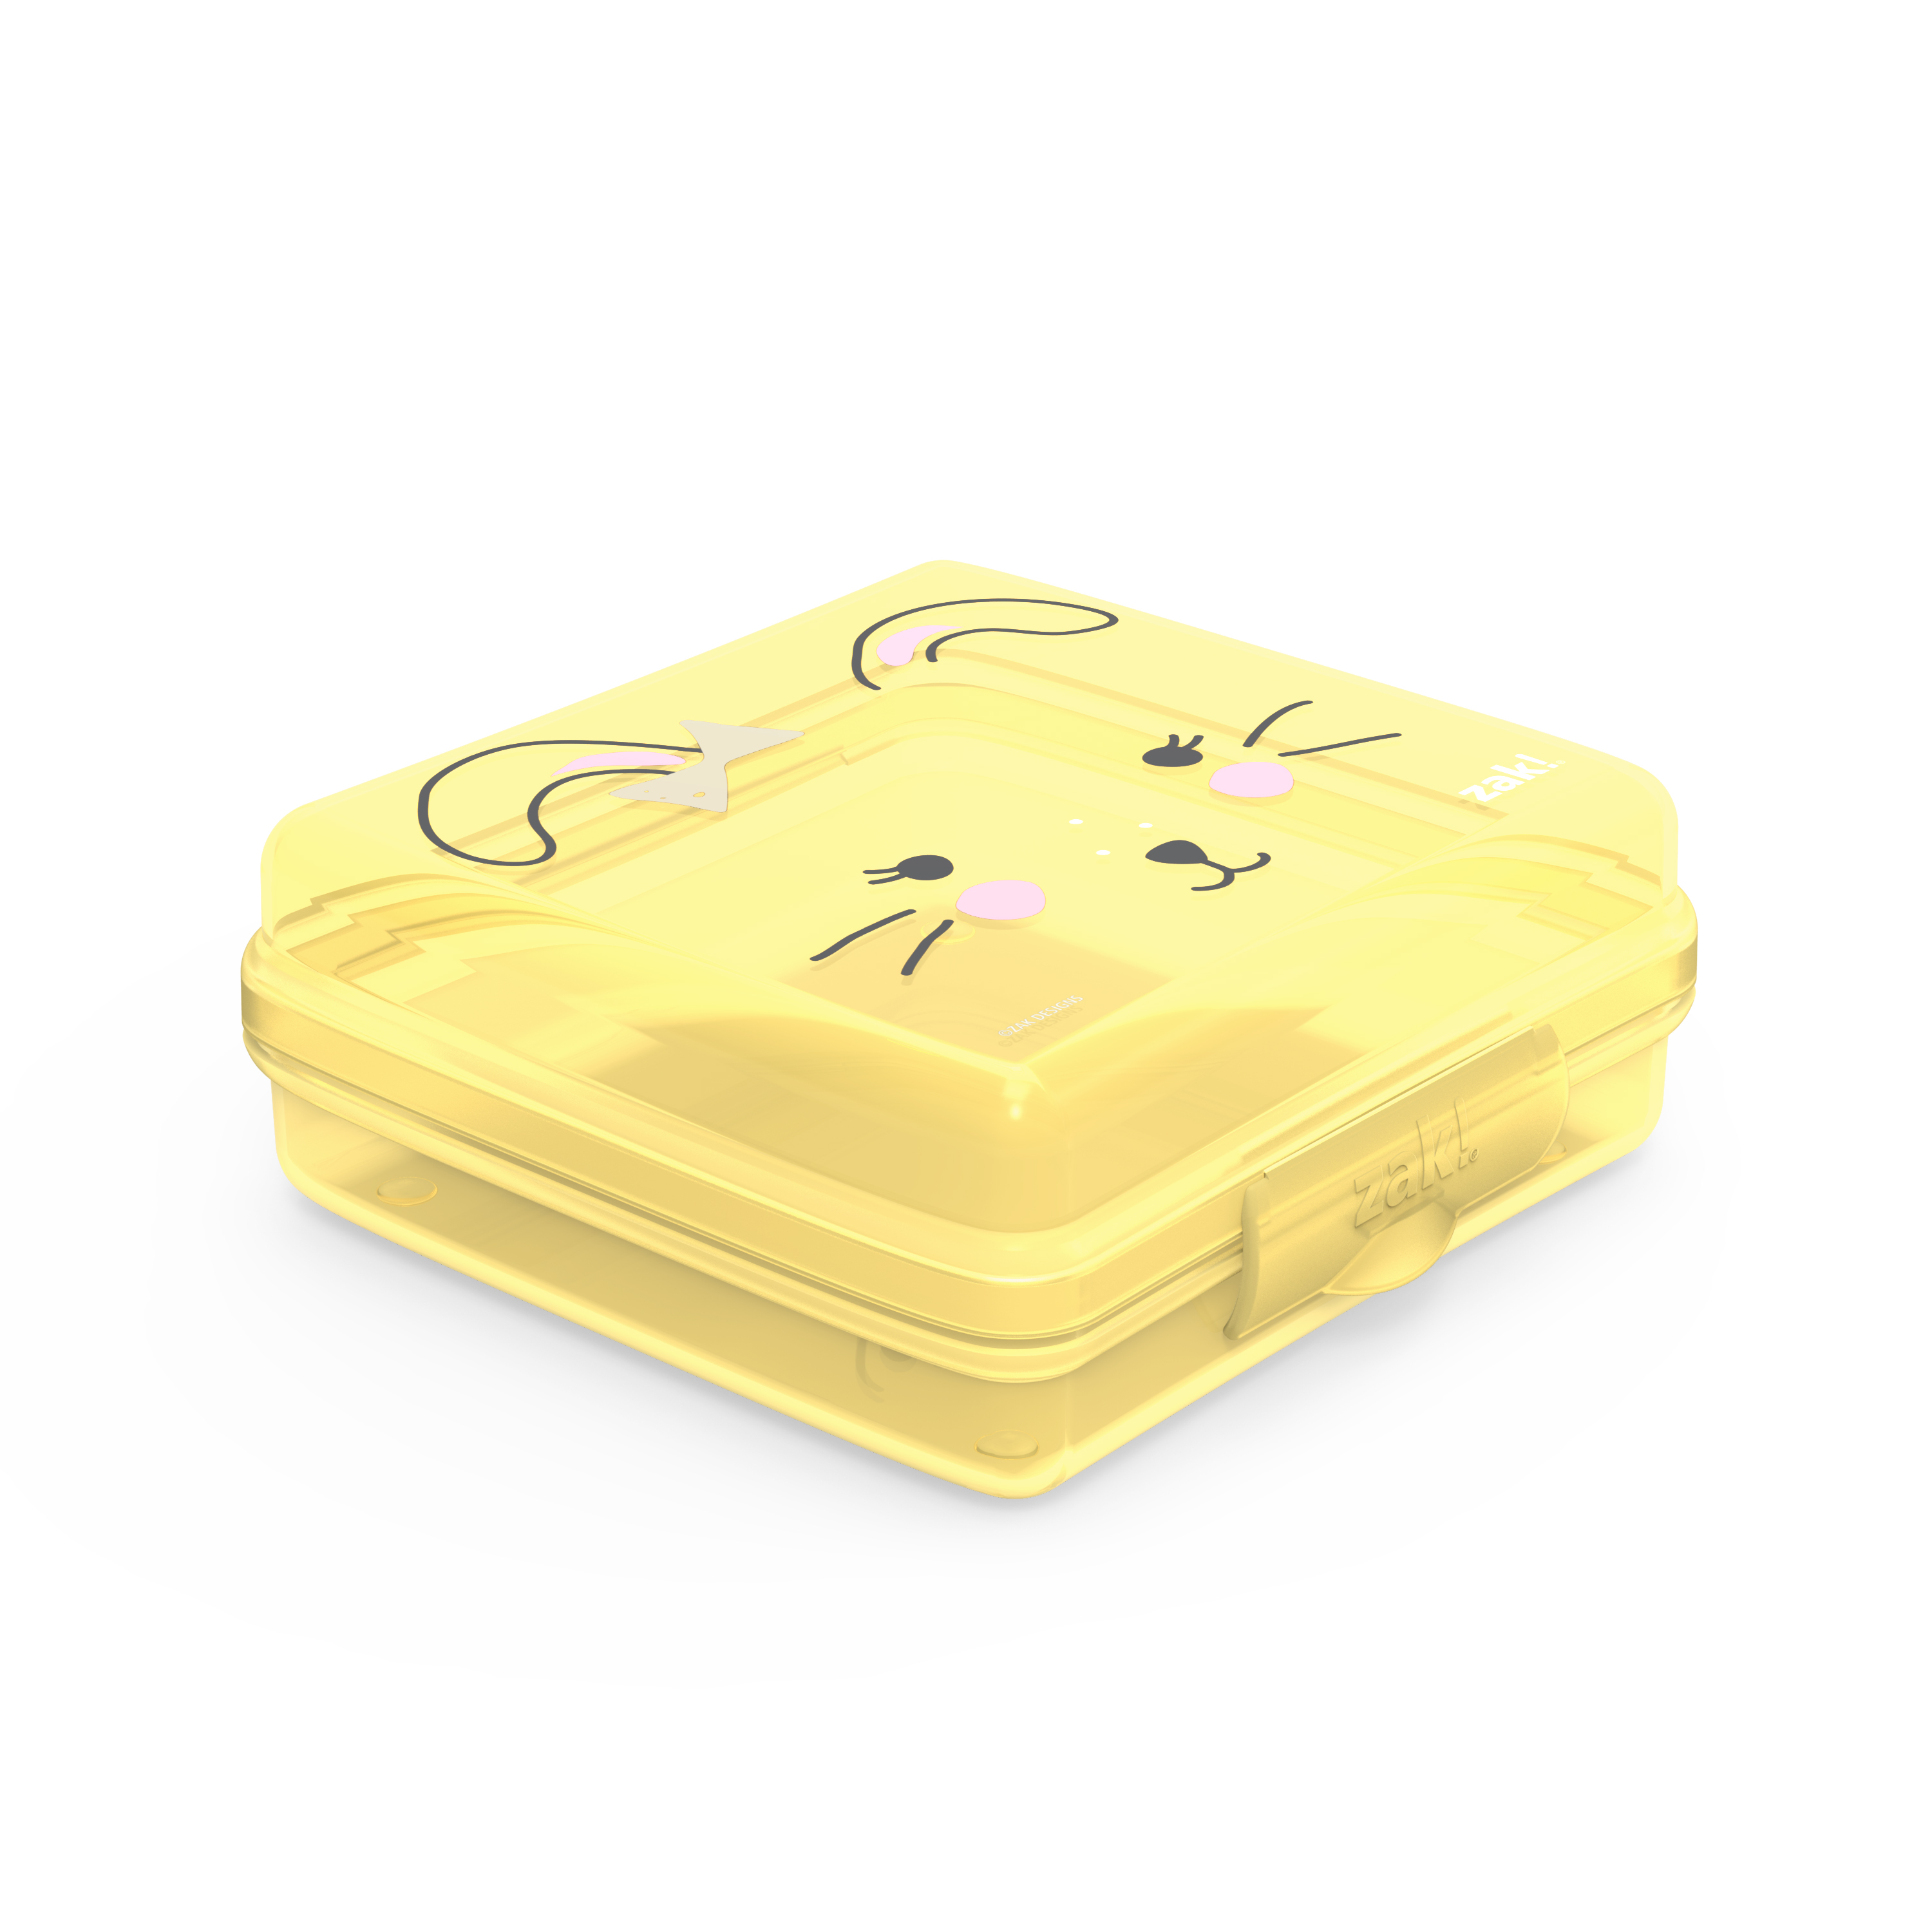 Soft Lines Reusable Hinged Food Container, Bunnies slideshow image 2